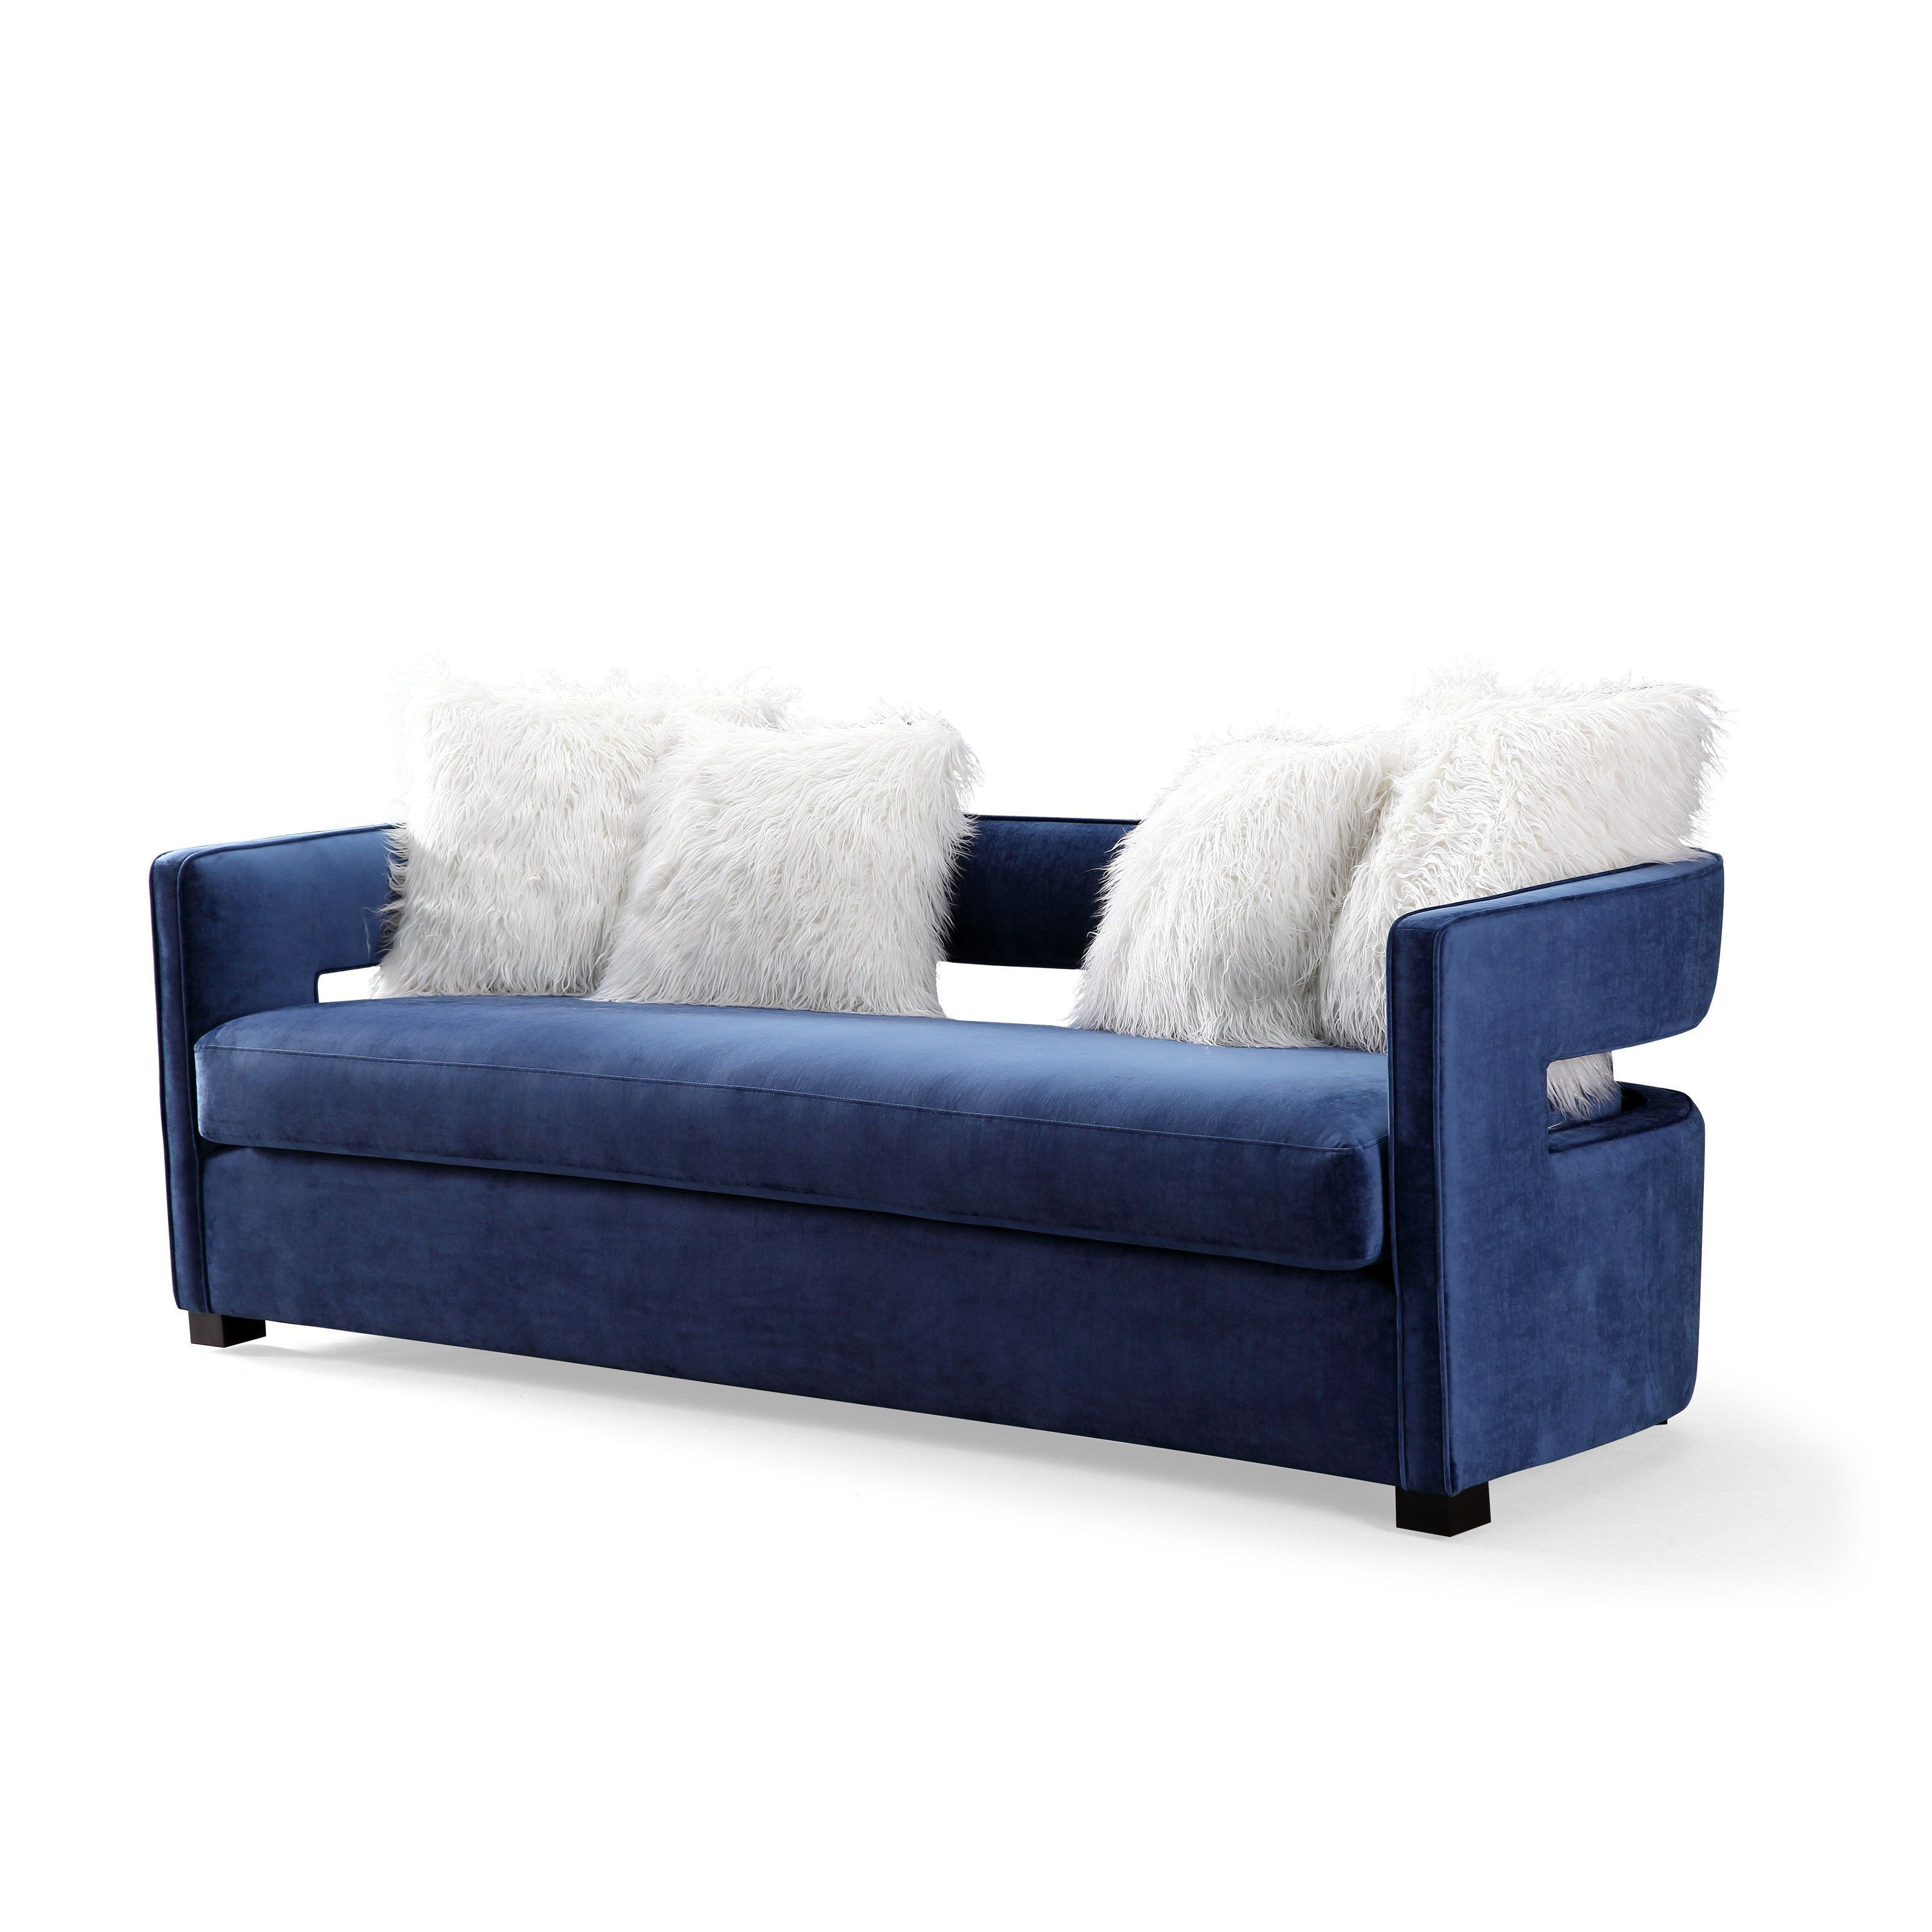 furniture navy com at p farah tov cupboard homelement sofa